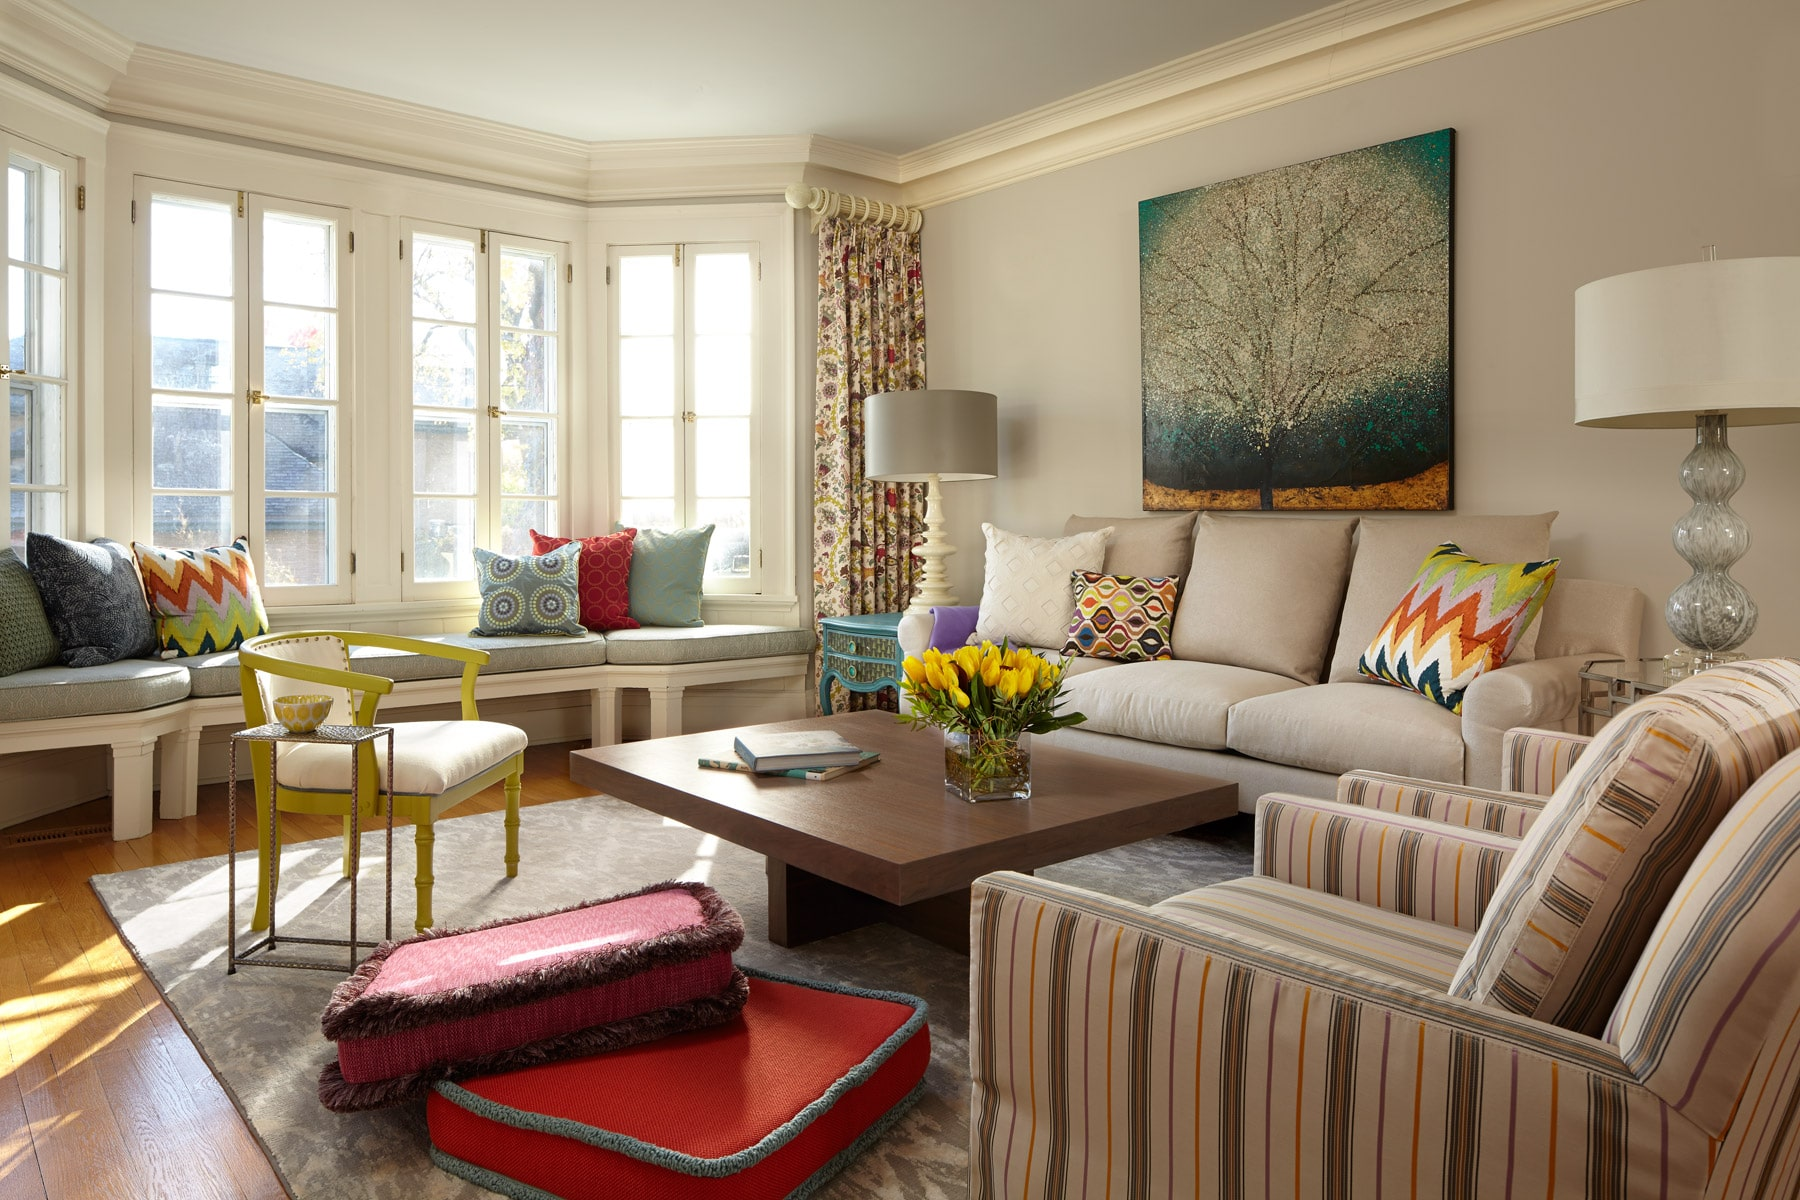 Eclectic-Renovated-Home-Living-Room-Minneapolis-interior-designer.jpg